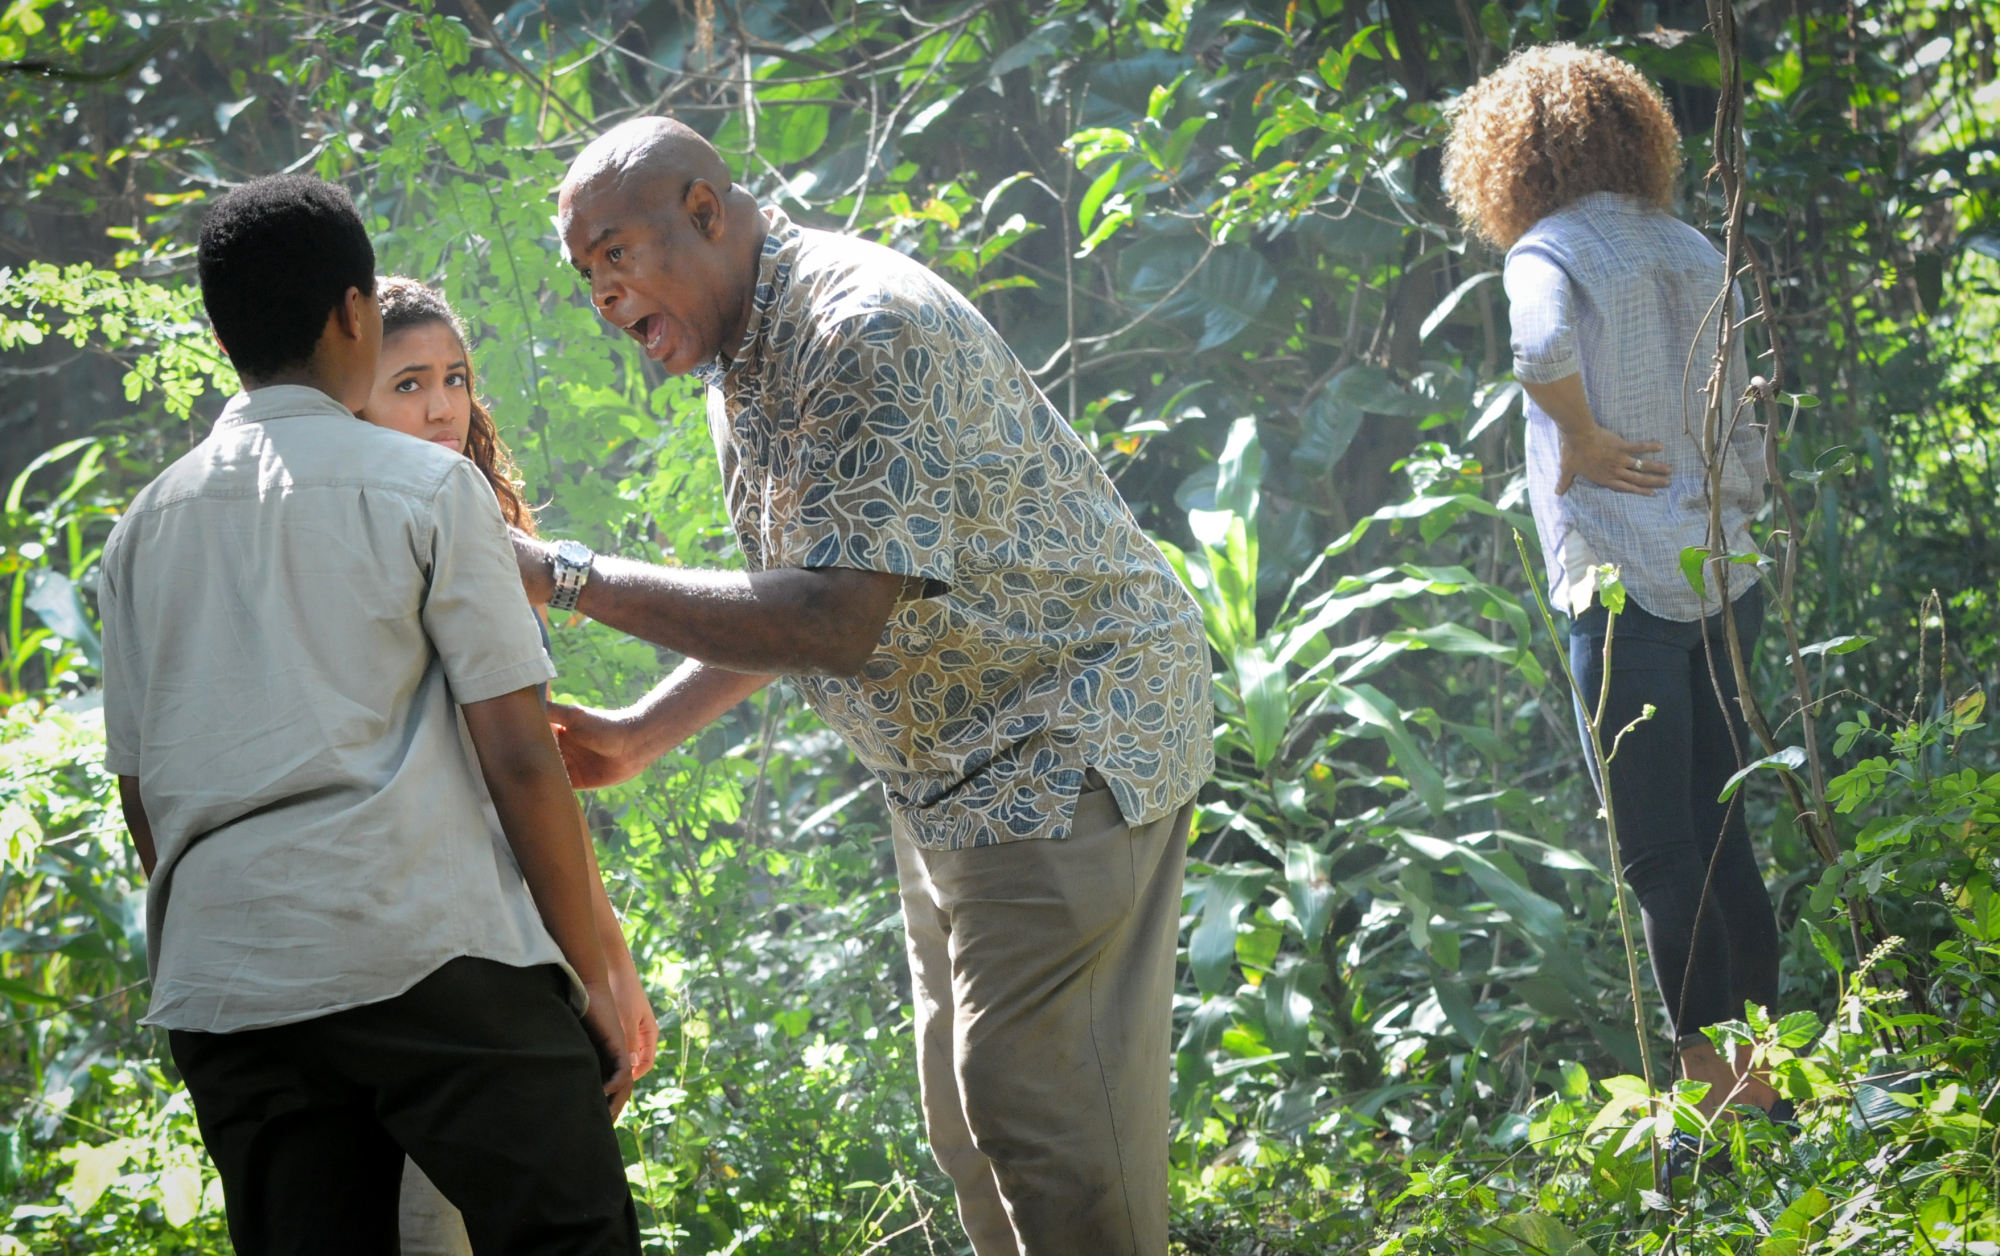 Chosen Jacobs as Will Grover, Paige Hurd as Samantha Grover, Chi McBride as Lou Grover, and Michelle Hurd as Renee Grover